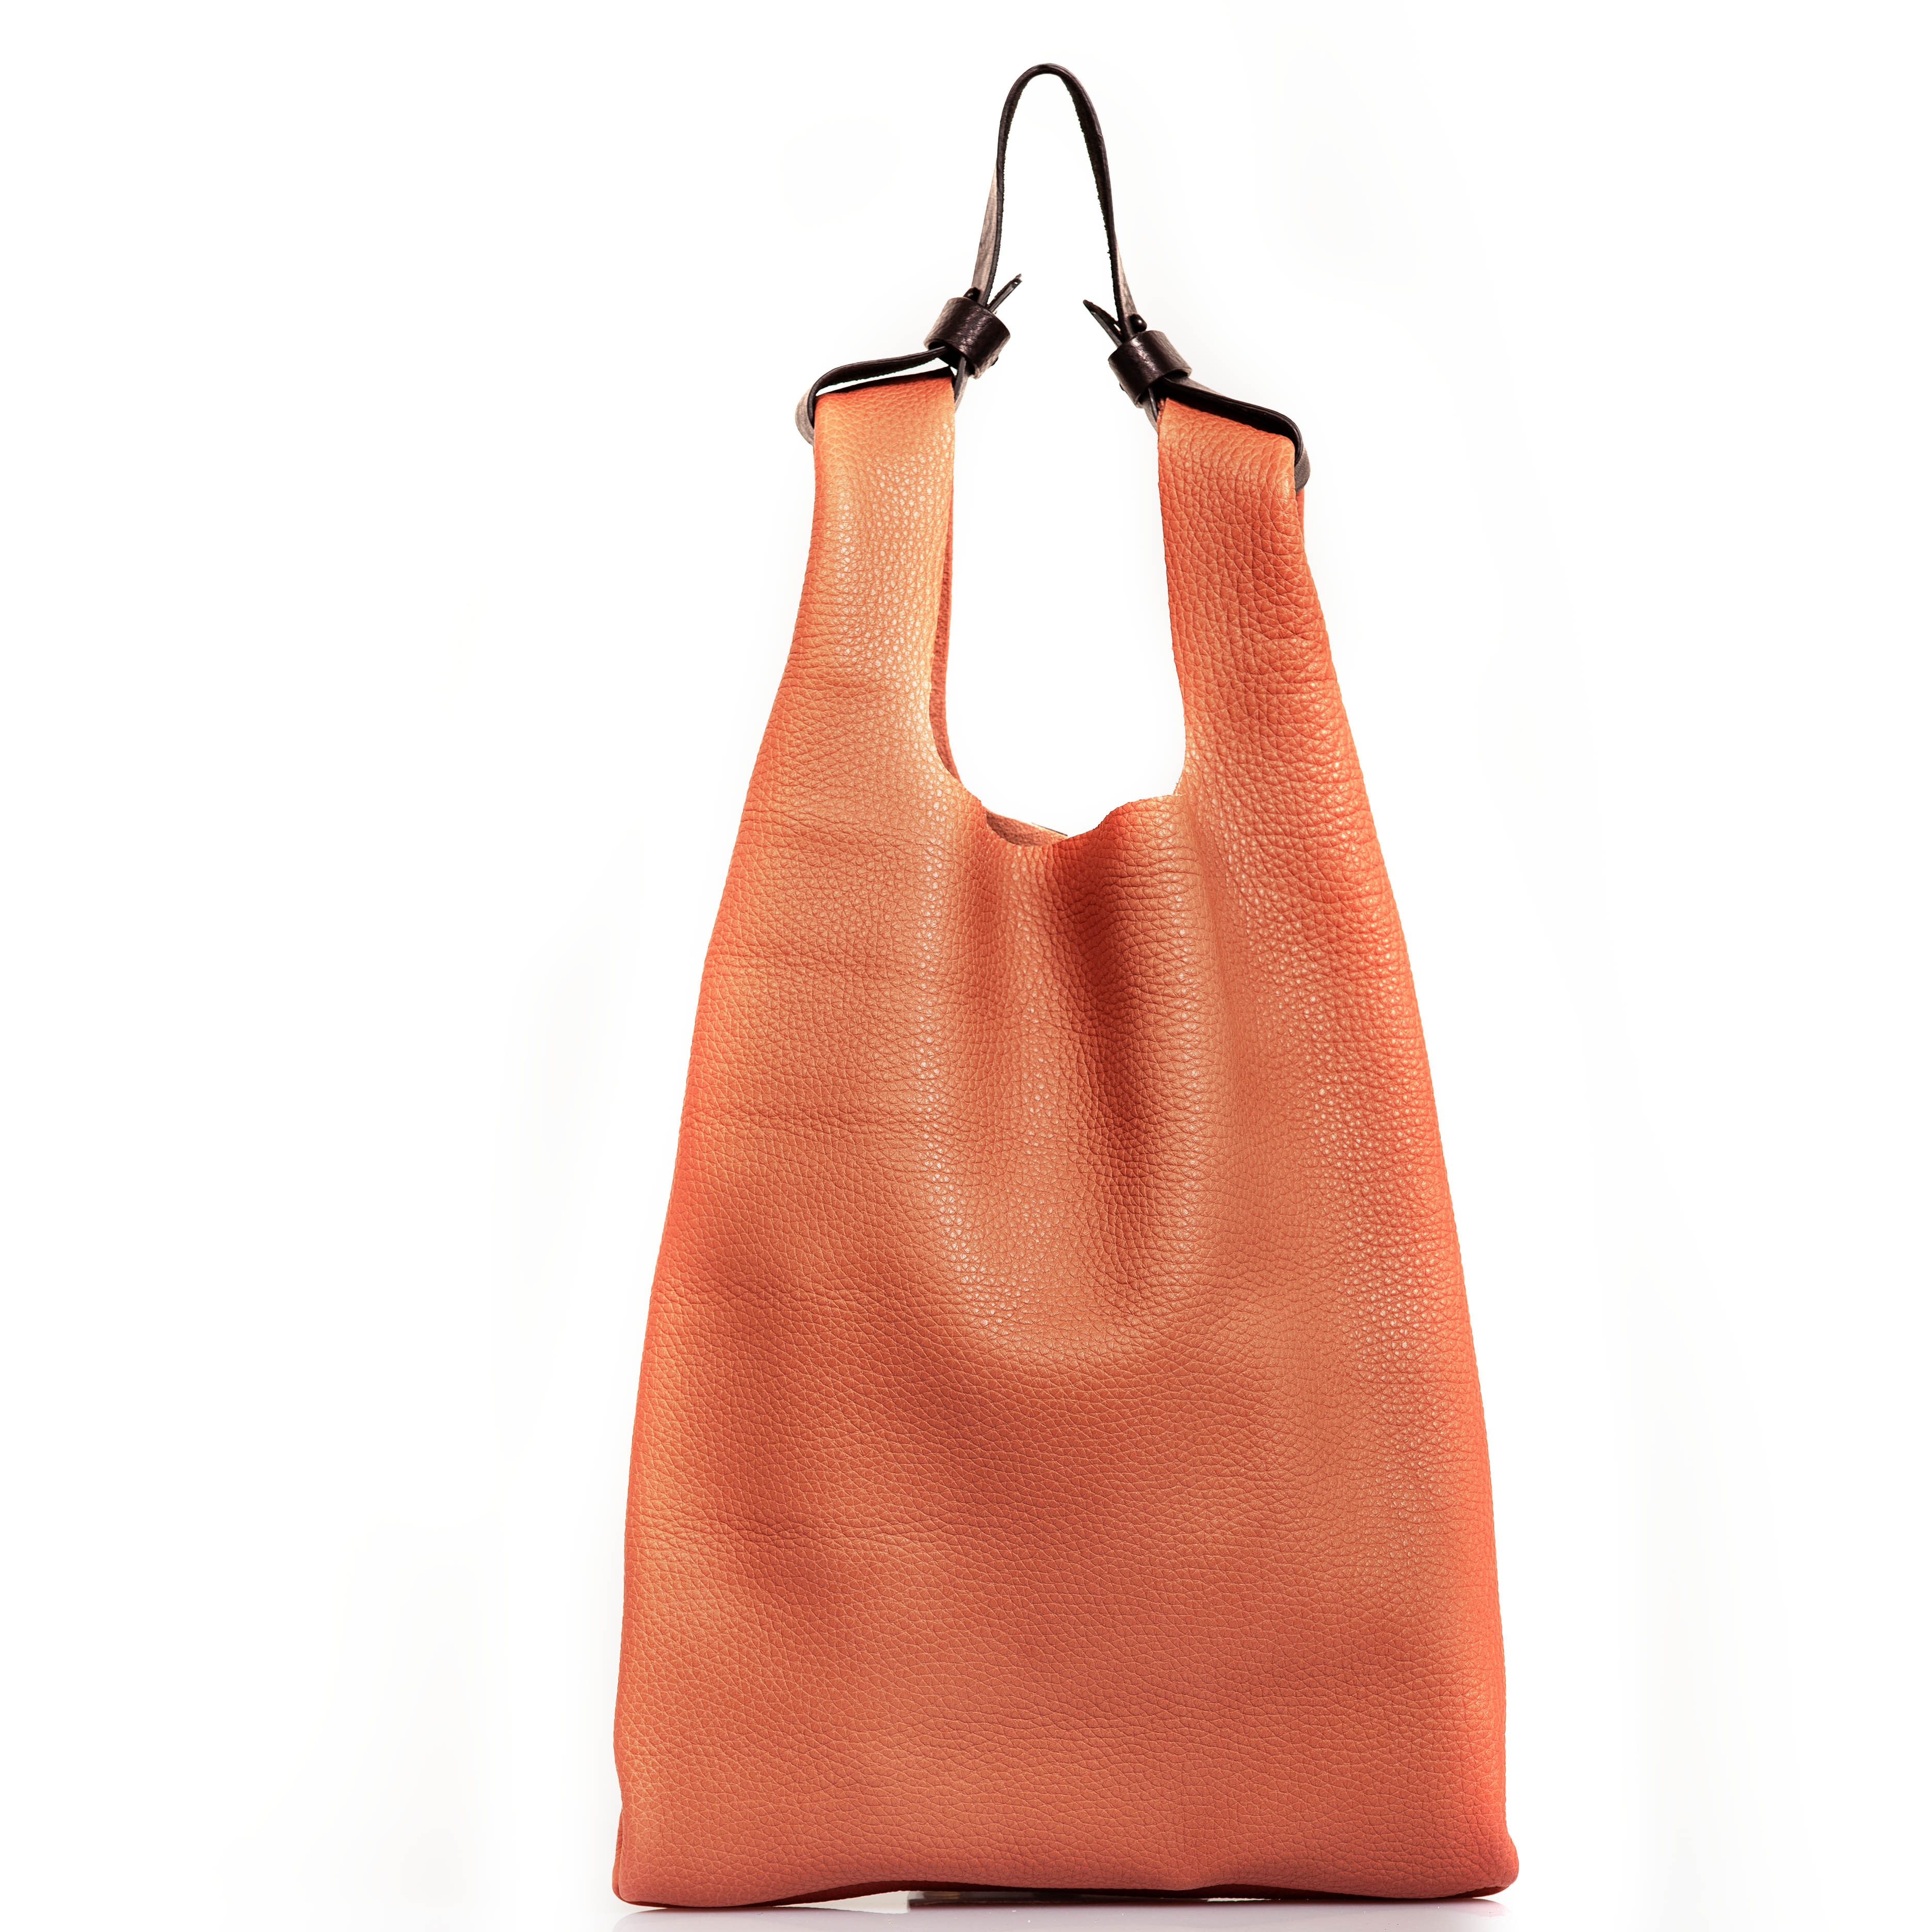 7646df8a04 Shopping bag in pelle rosa cipria - cinzia rossi